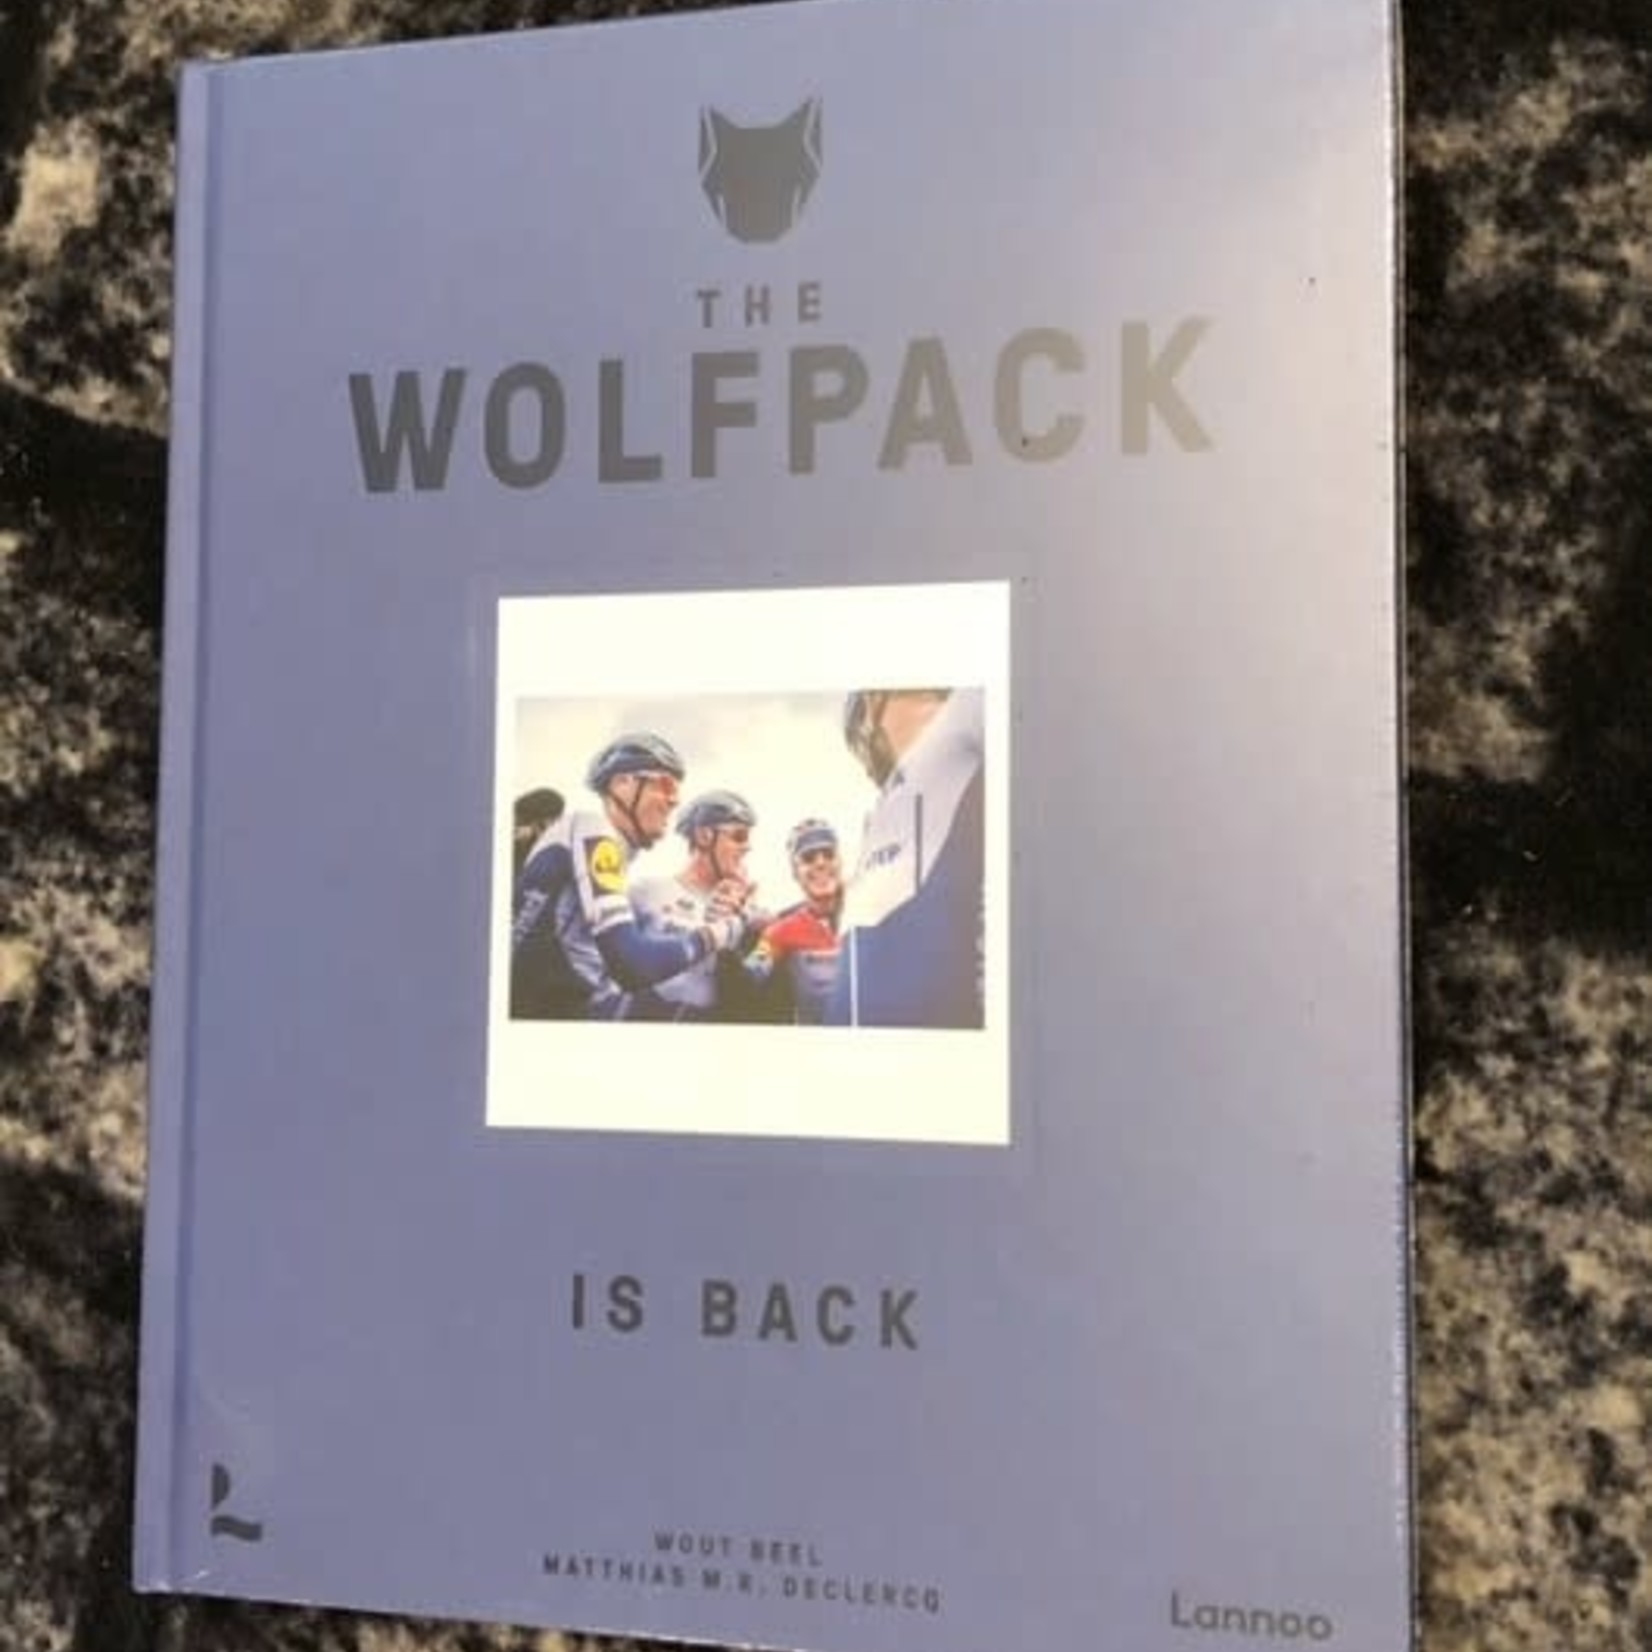 The Wolfpack is back